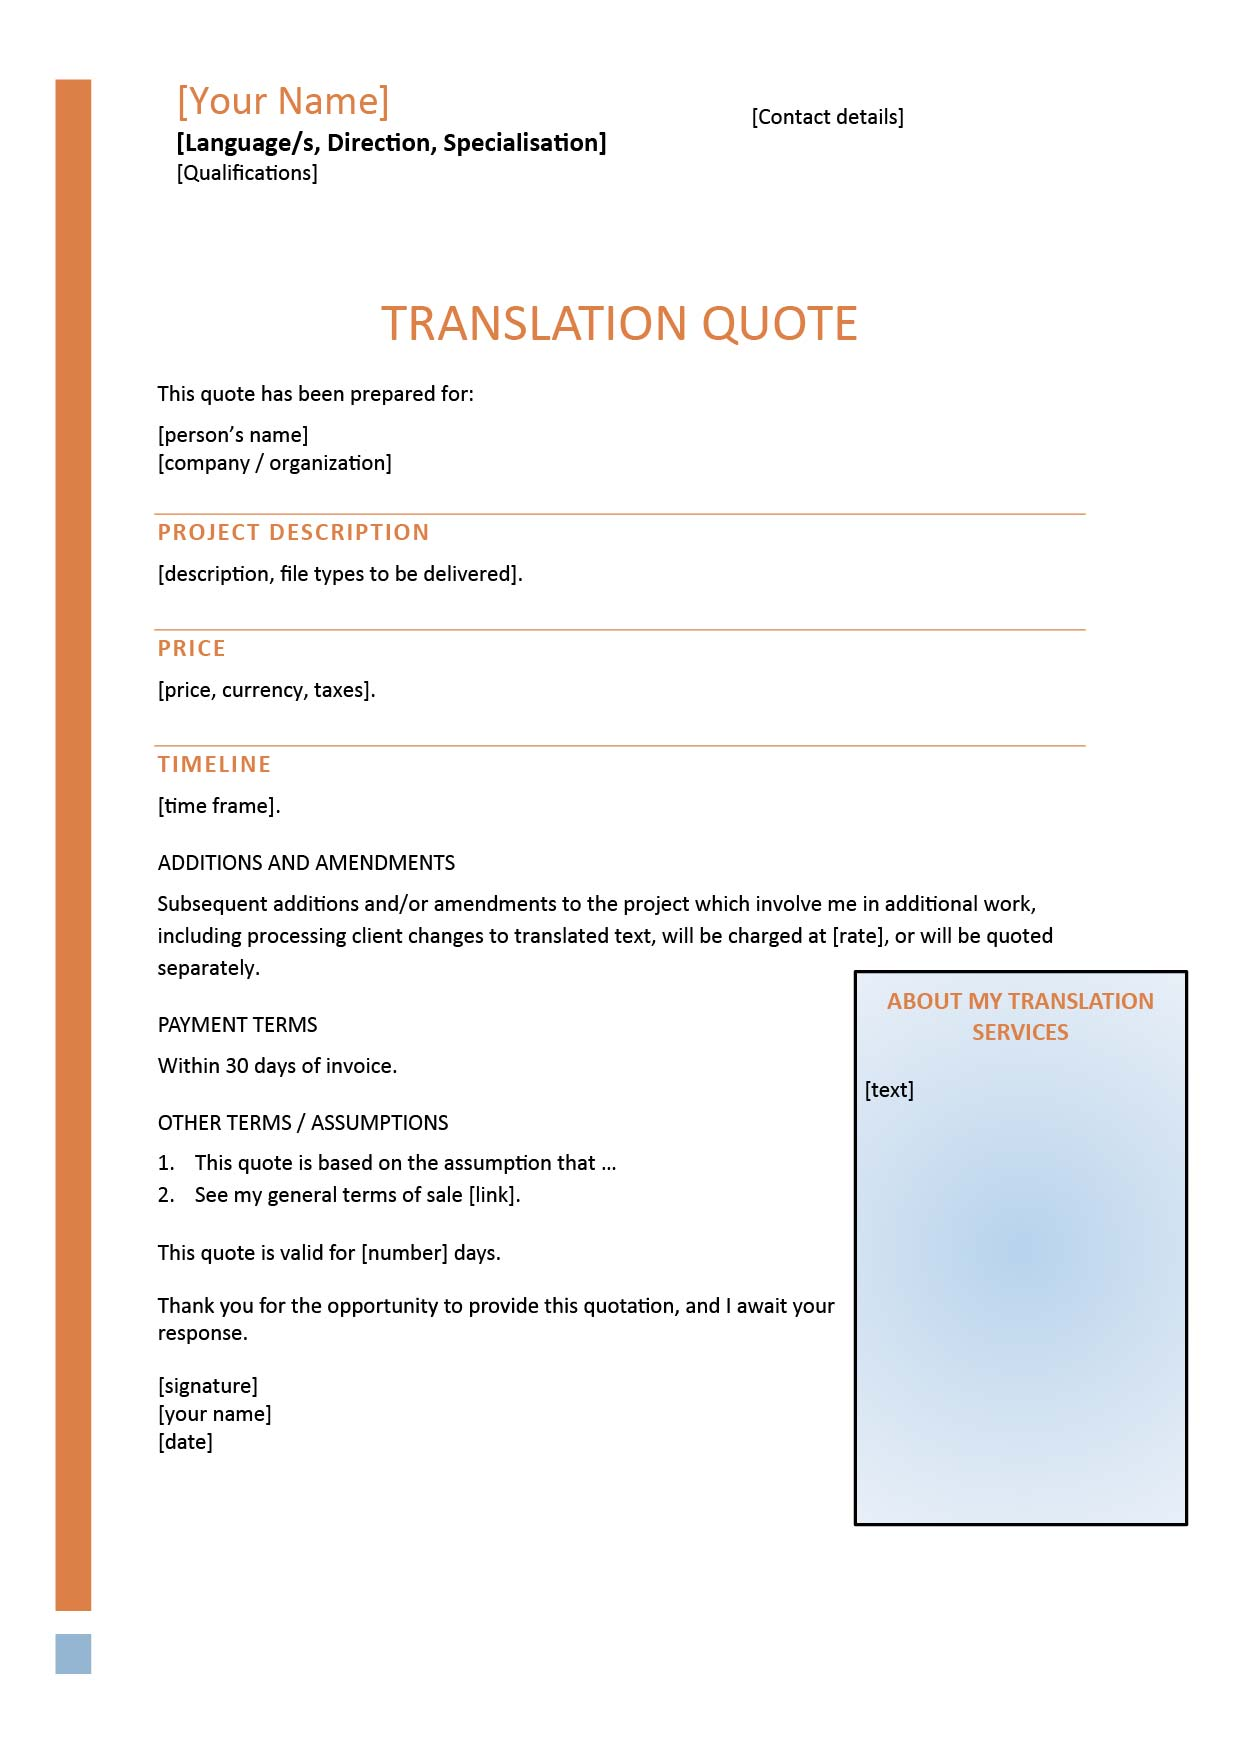 Sample Project Quotation | How To Write Compelling Translation Quotes